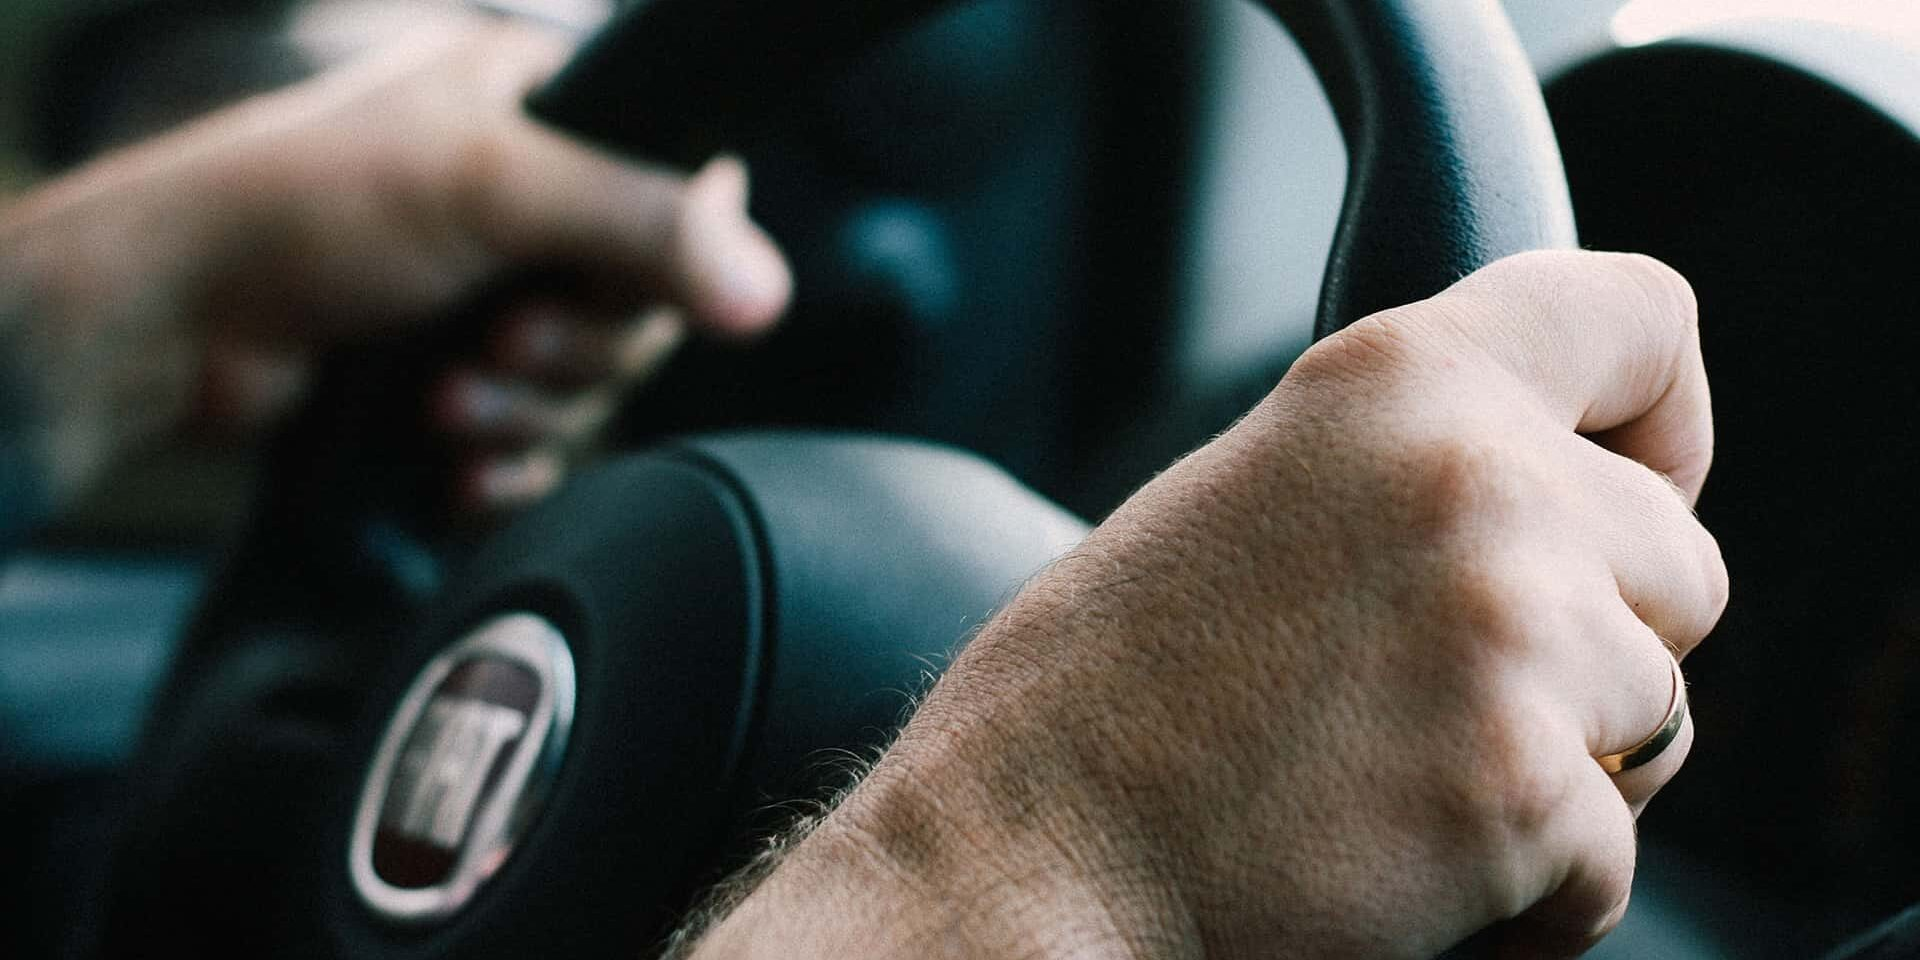 Safe Driving to Prevent Accidents